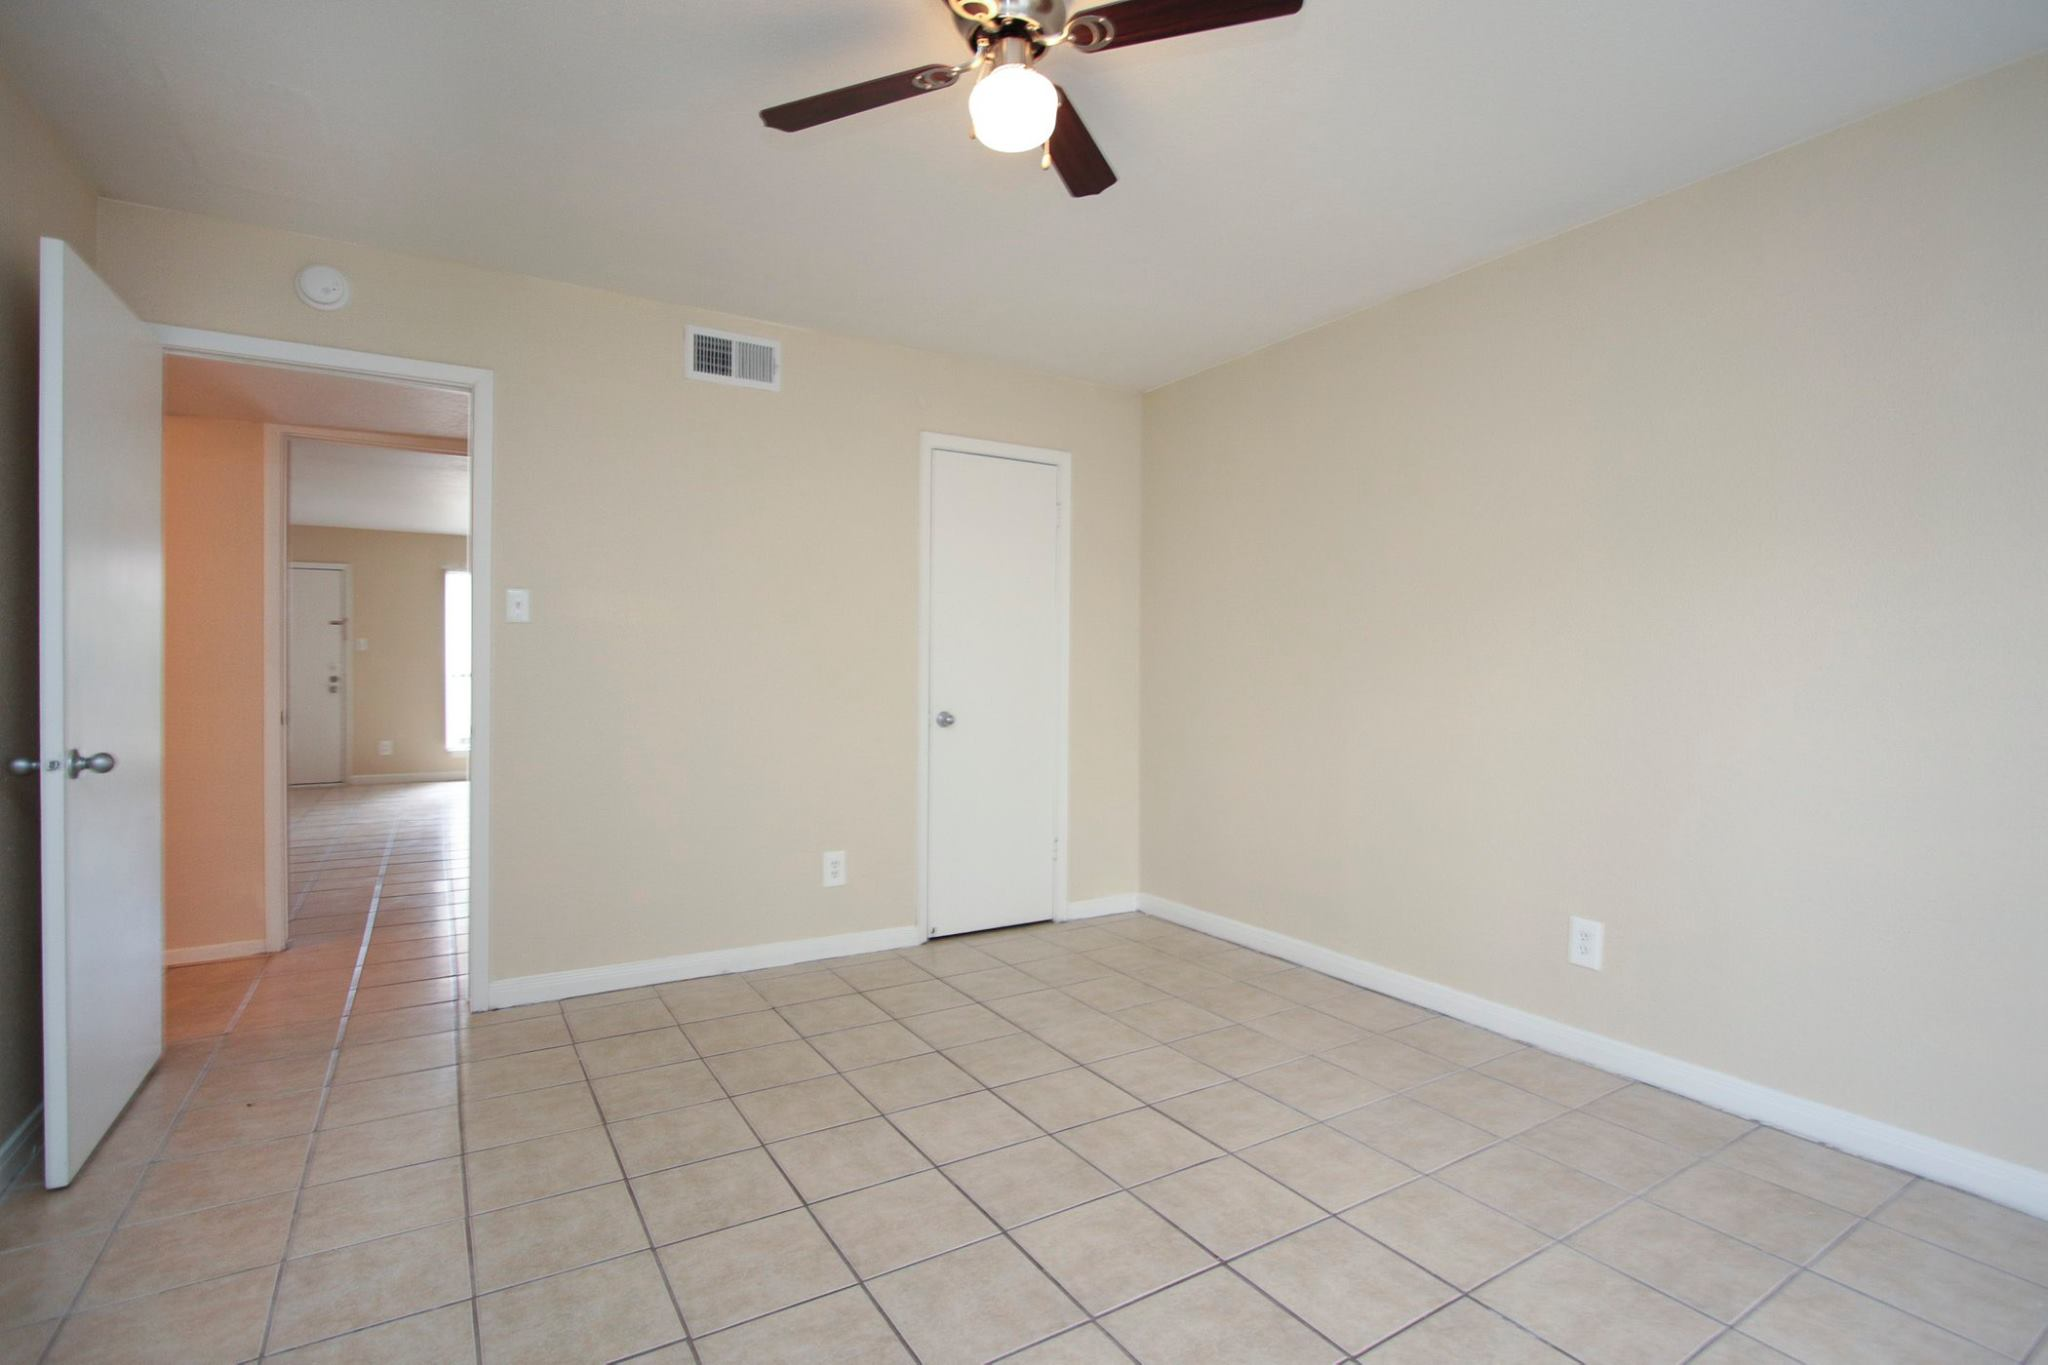 Tiled Flooring at Spring Brook Lofts Apartments in Houston, Texas